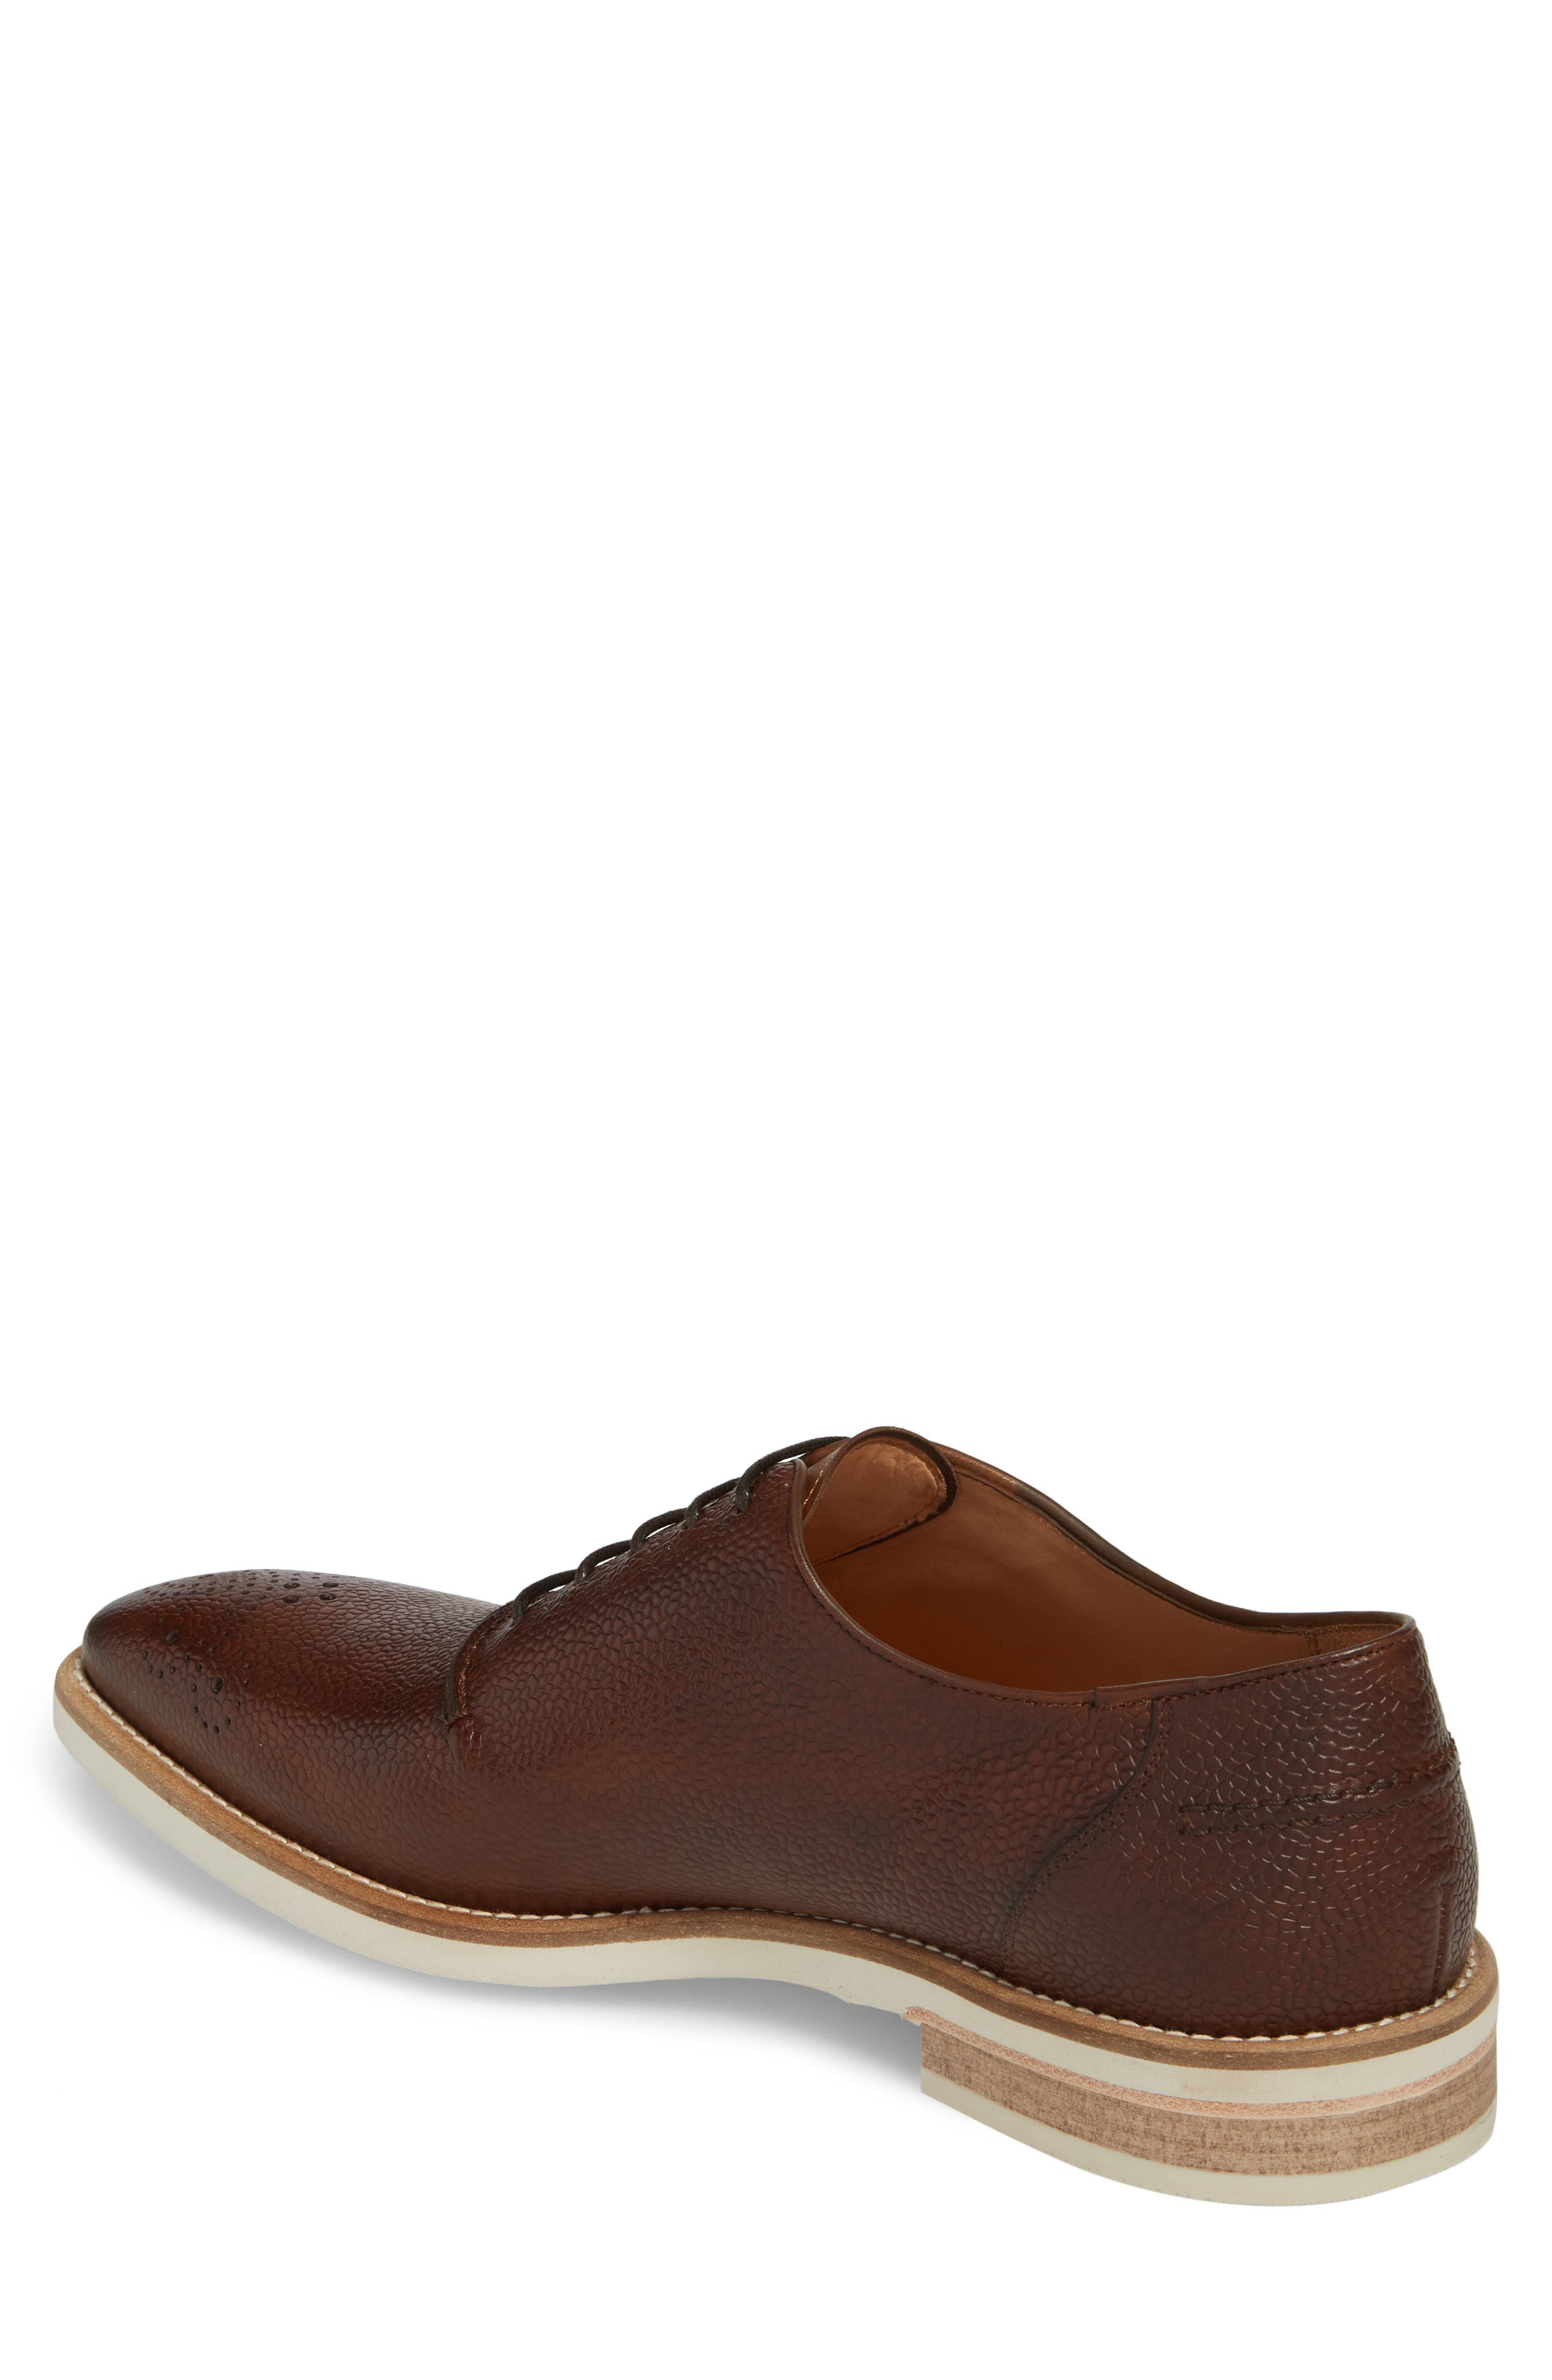 Polux Brogued Oxford,                             Alternate thumbnail 2, color,                             COGNAC LEATHER